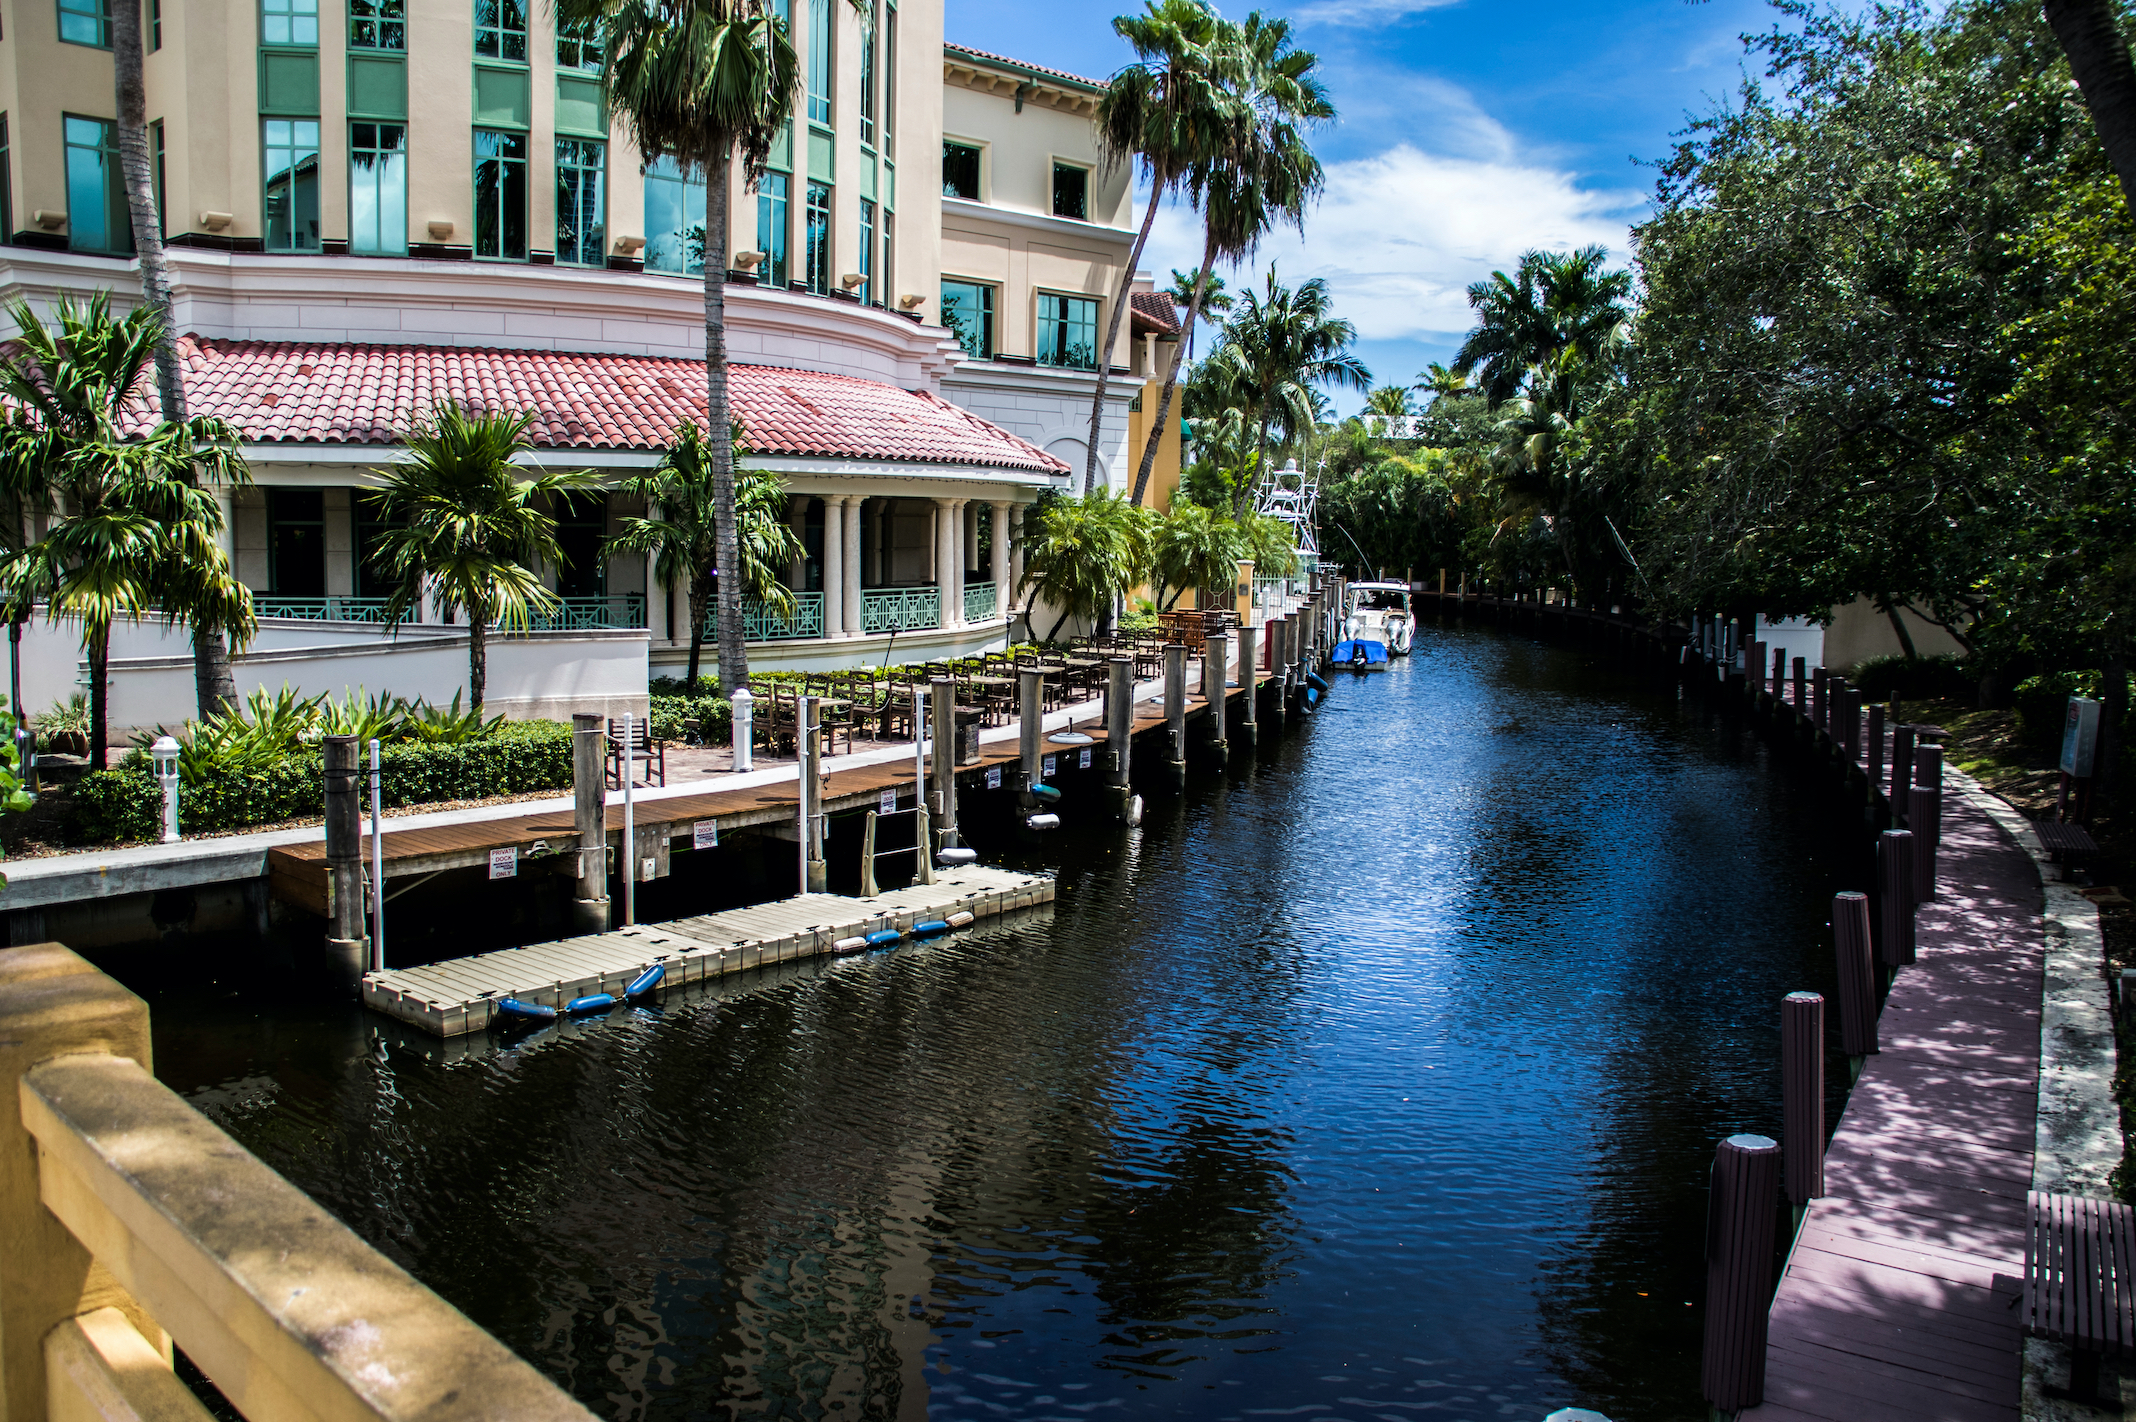 Fort Lauderdale is the Venice of America.